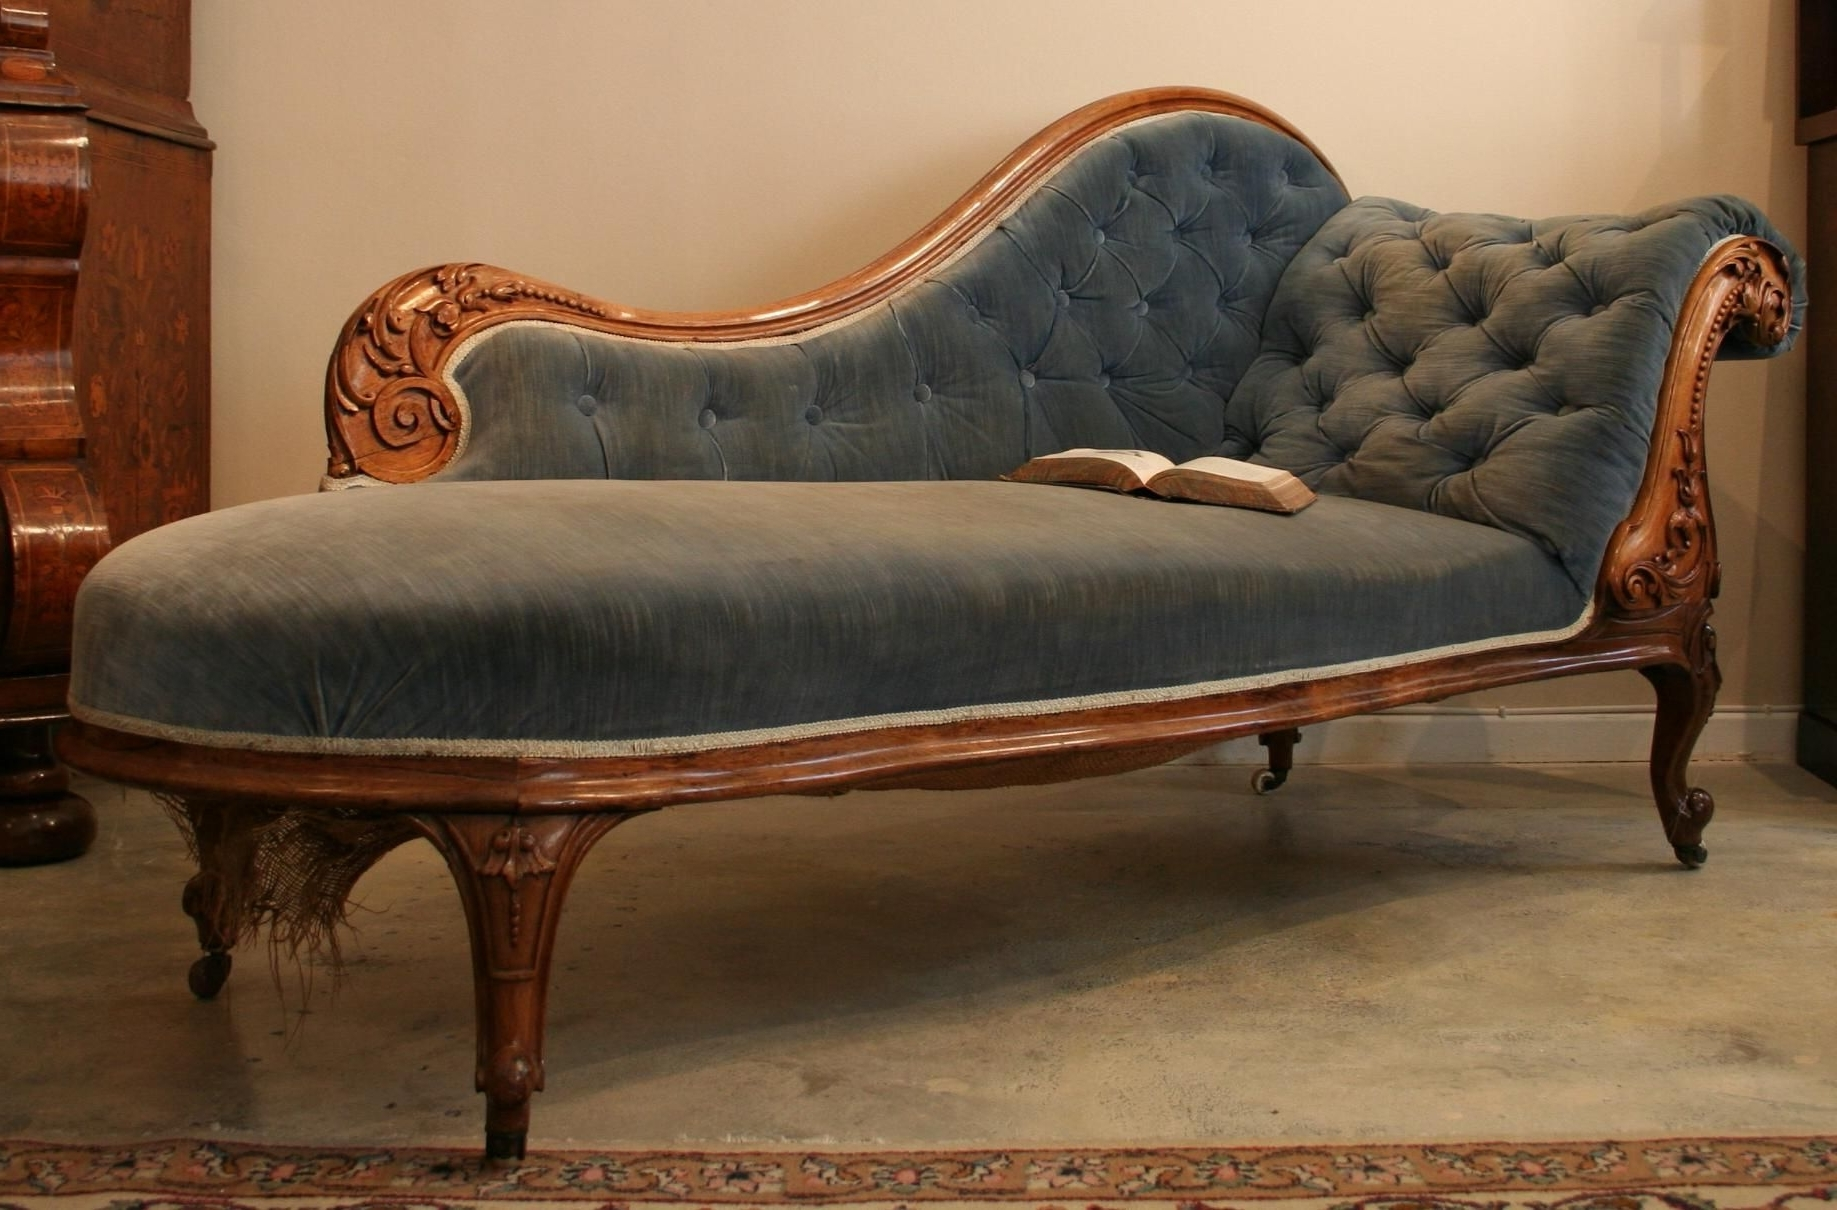 Chaise Lounges, Google Images And Fainting Couch Pertaining To 2018 Hardwood Chaise Lounge Chairs (View 14 of 15)